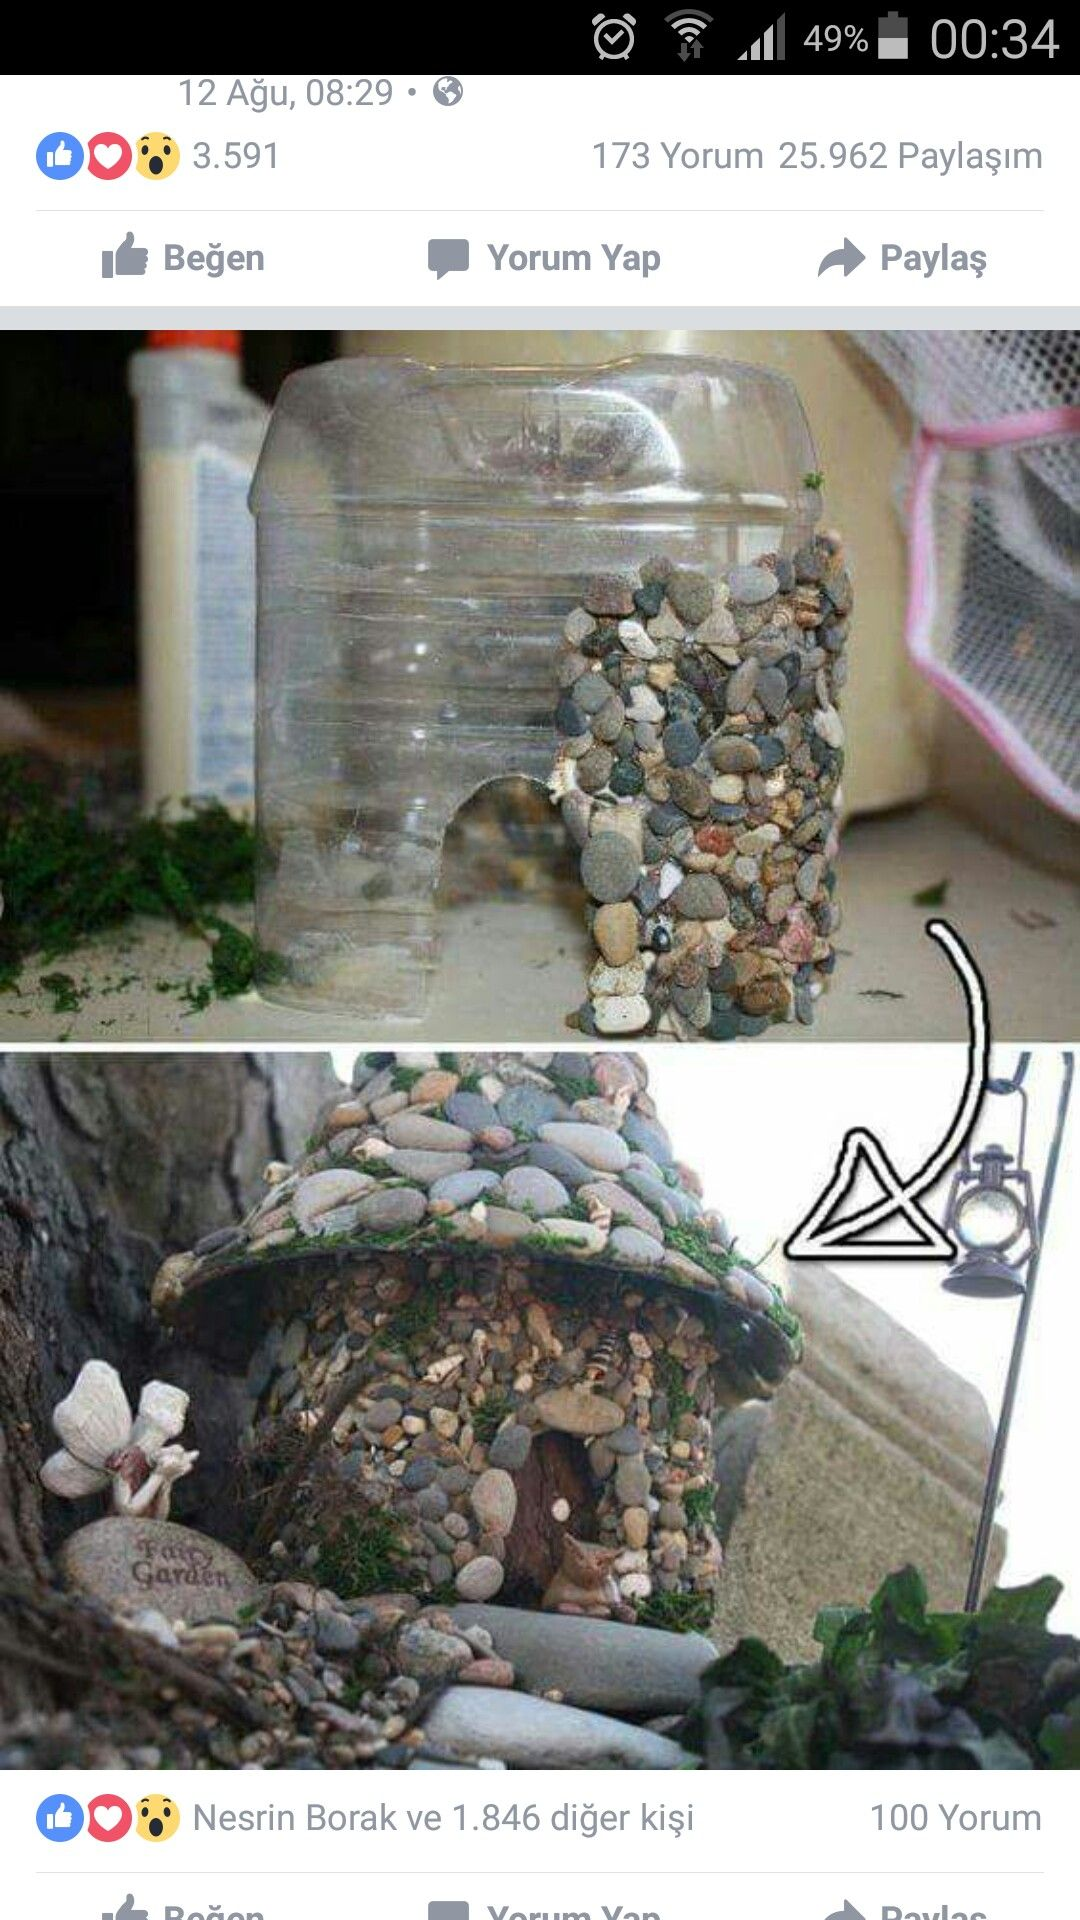 19 Cool DIY Projects To Improve The Look Of Your Home Just In One Day #plasticbottleart